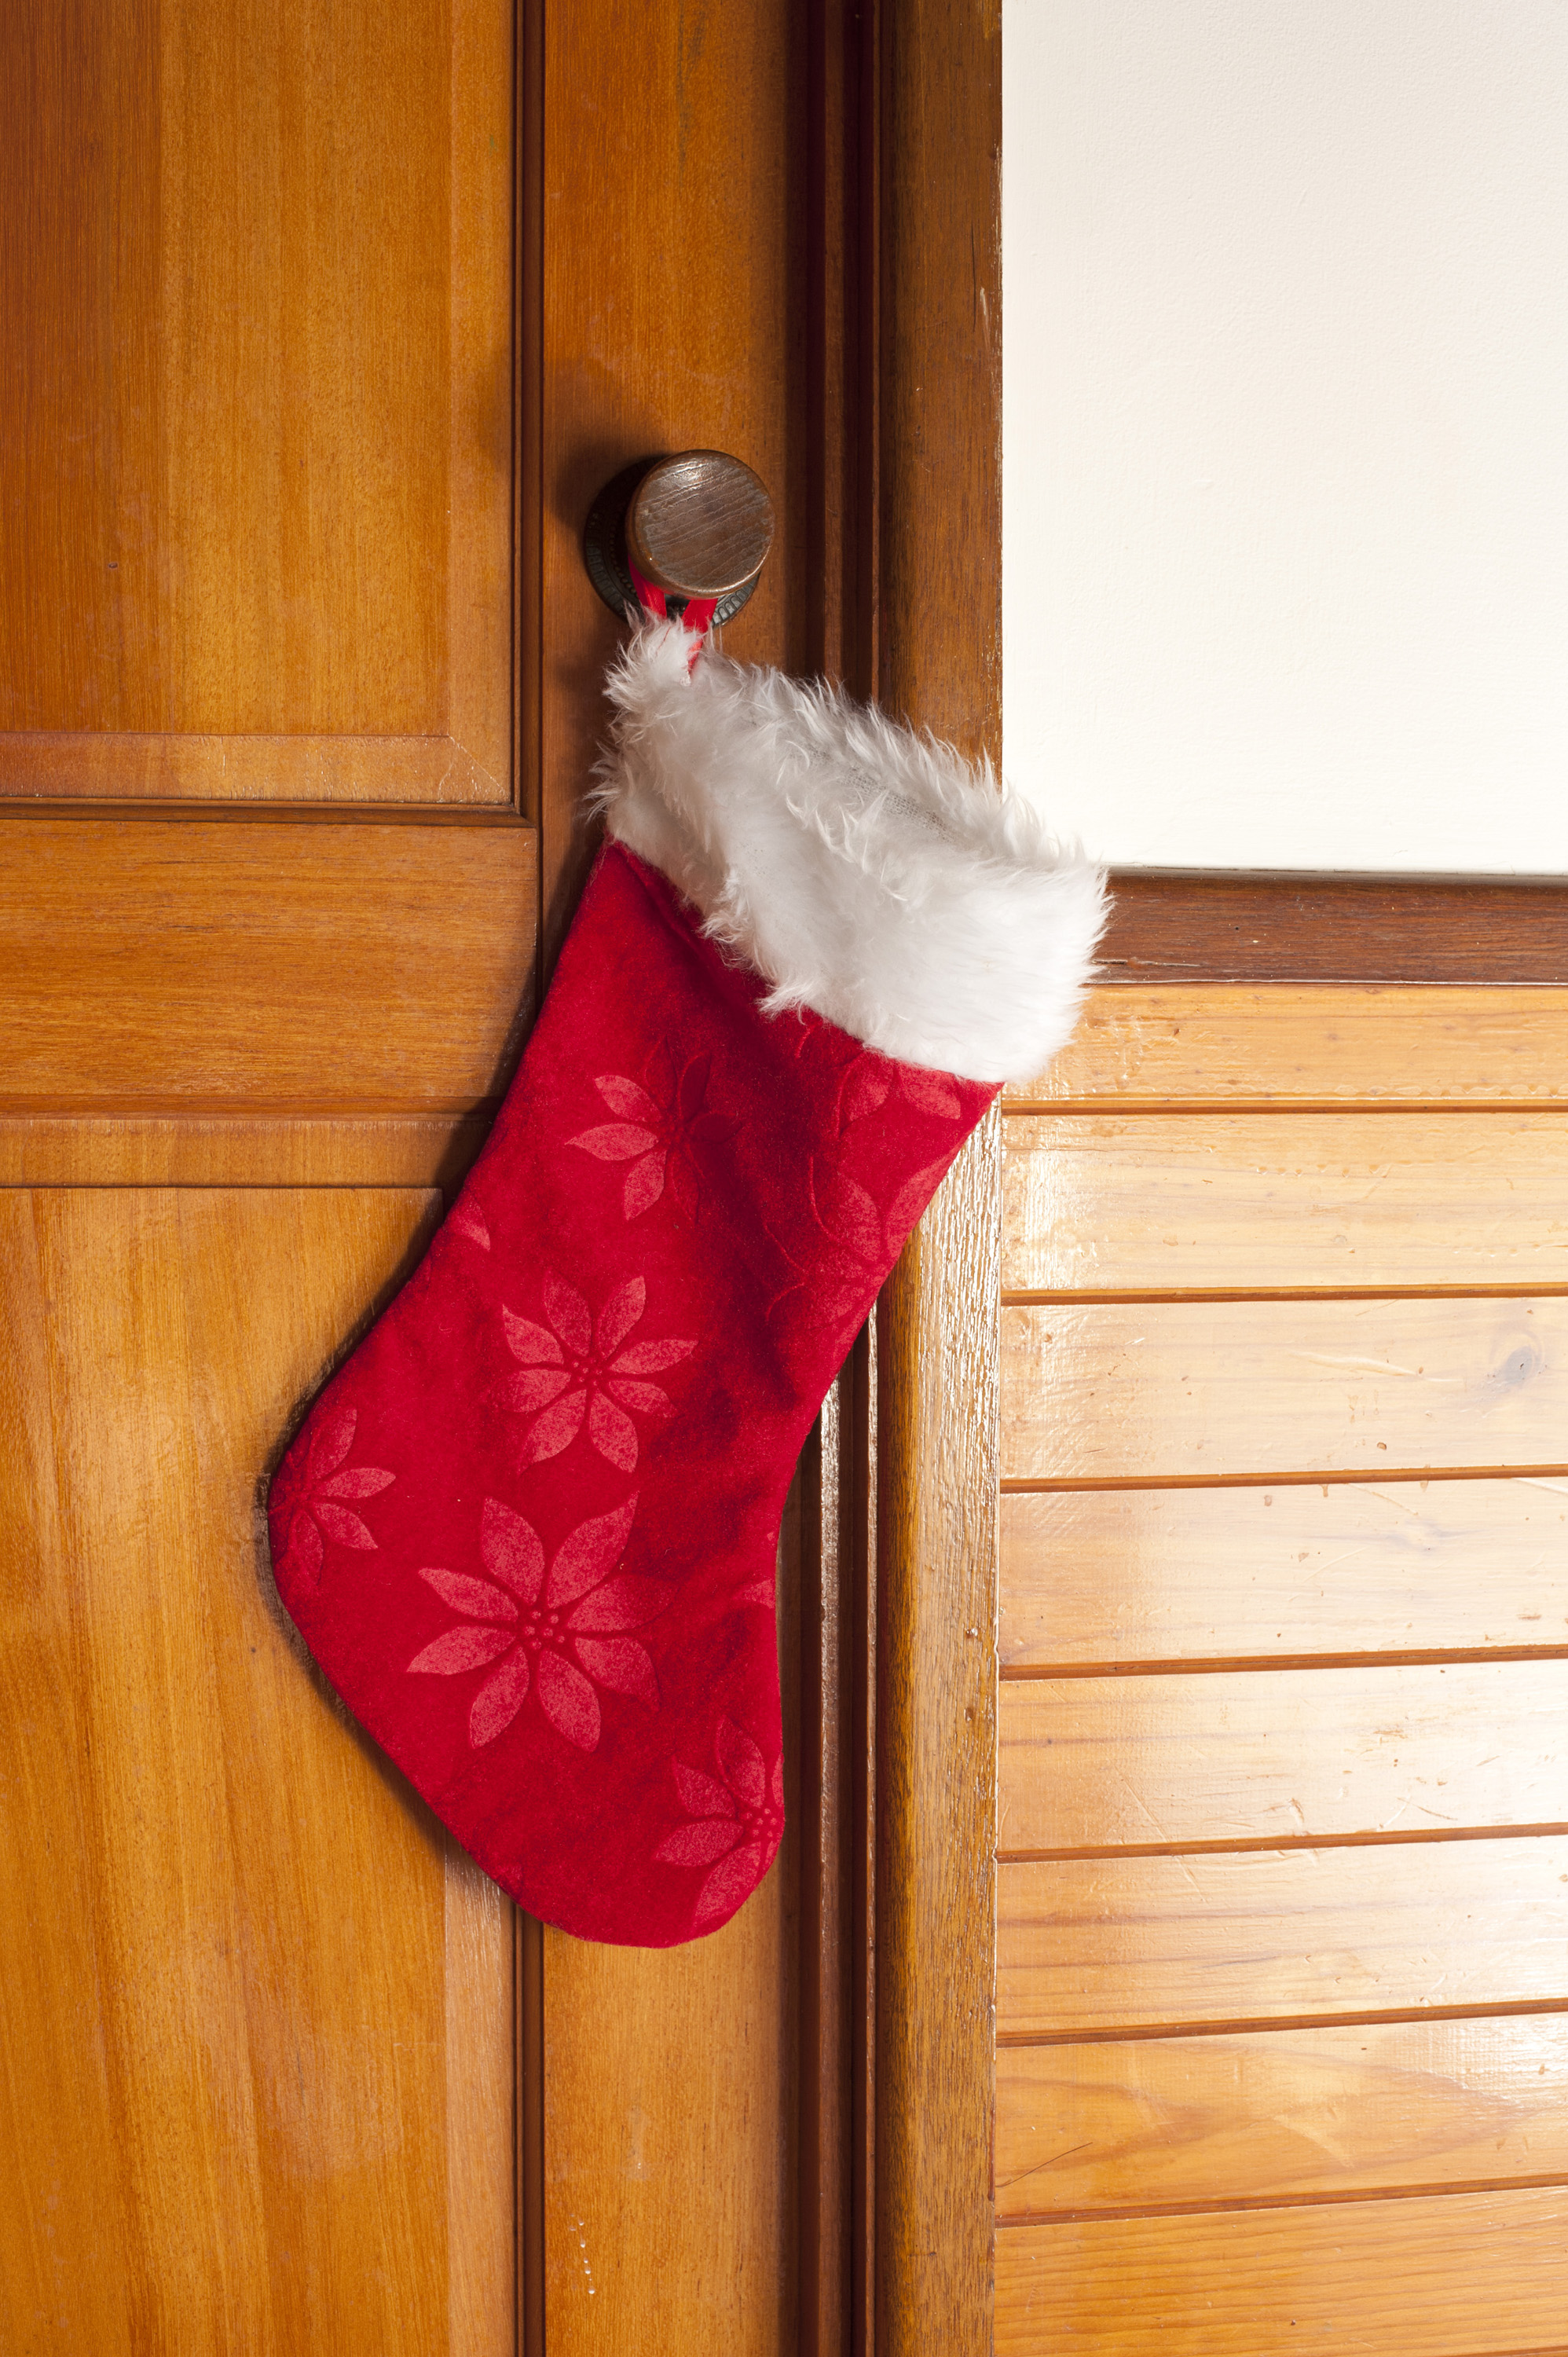 Empty decorative red Christmas stocking hanging on the handle of a wooden door waiting to be filled with gifts on Xmas Eve